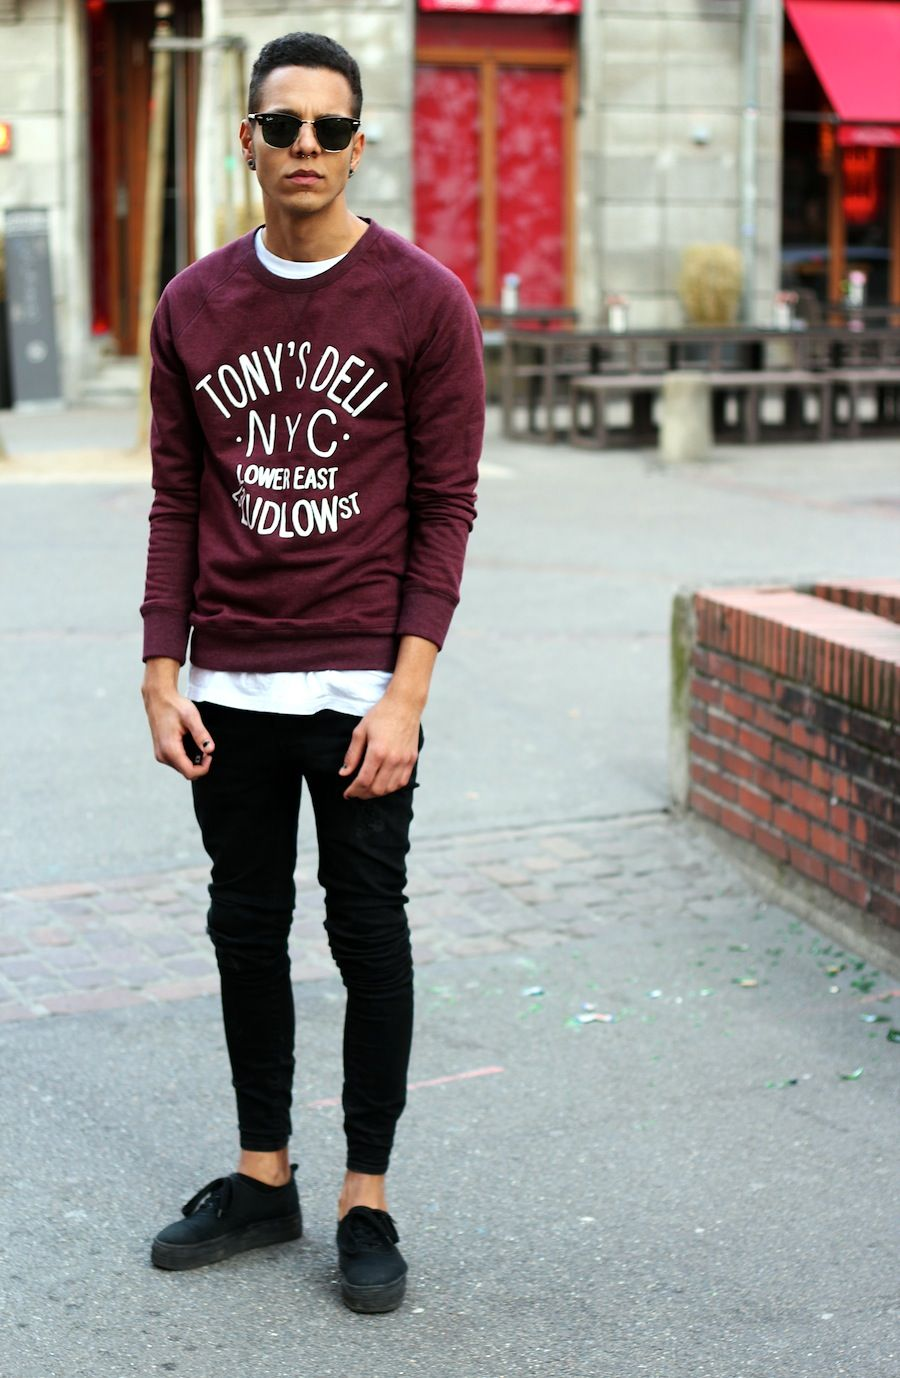 Tumblr Guys Fashion | www.pixshark.com - Images Galleries ...